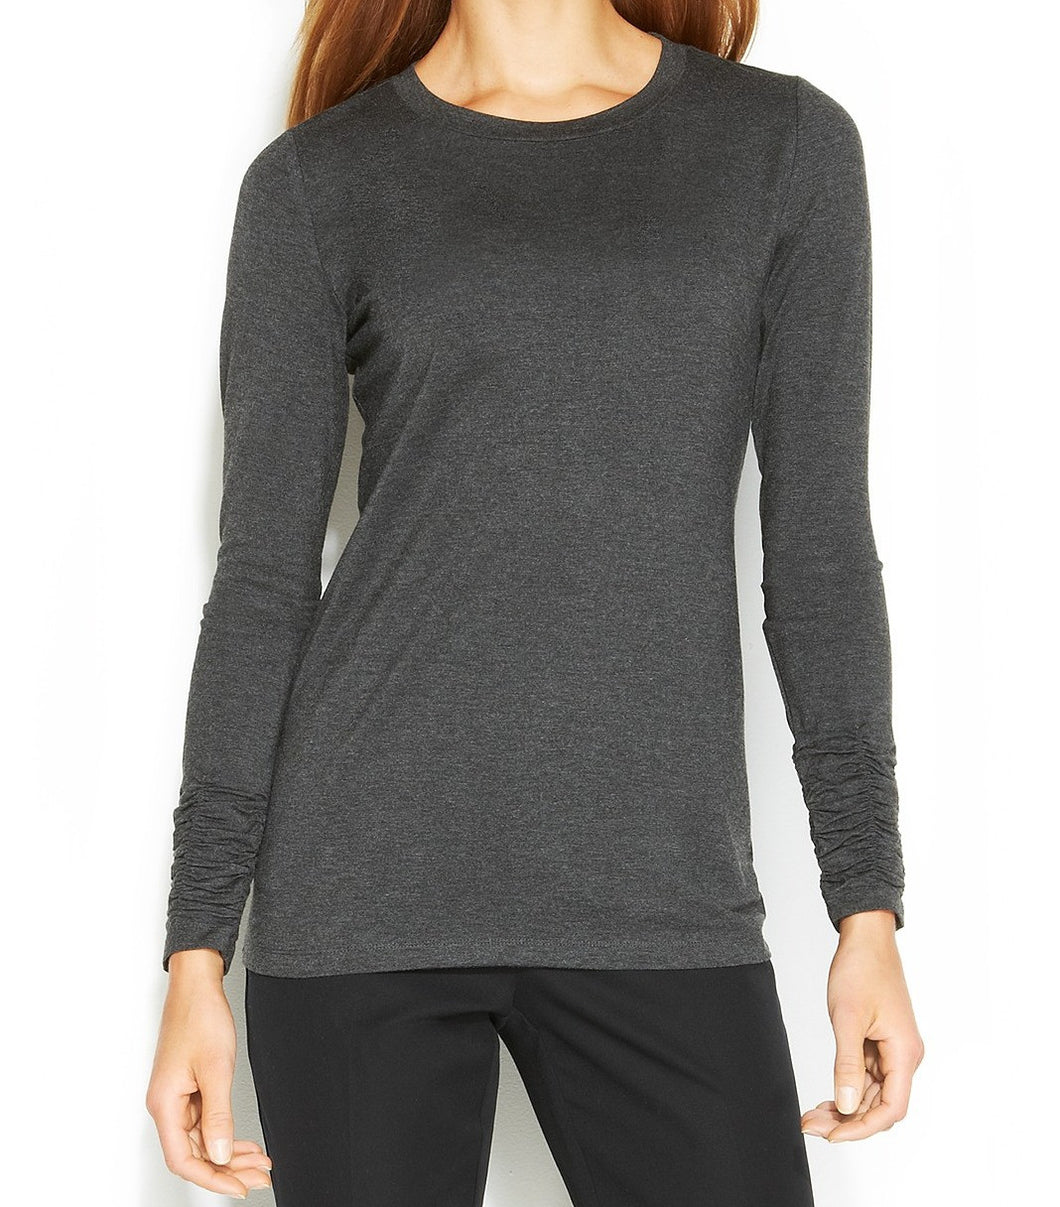 Alfani NEW Gray Women's Crewneck Long-Sleeve Ruched Knit Top XL